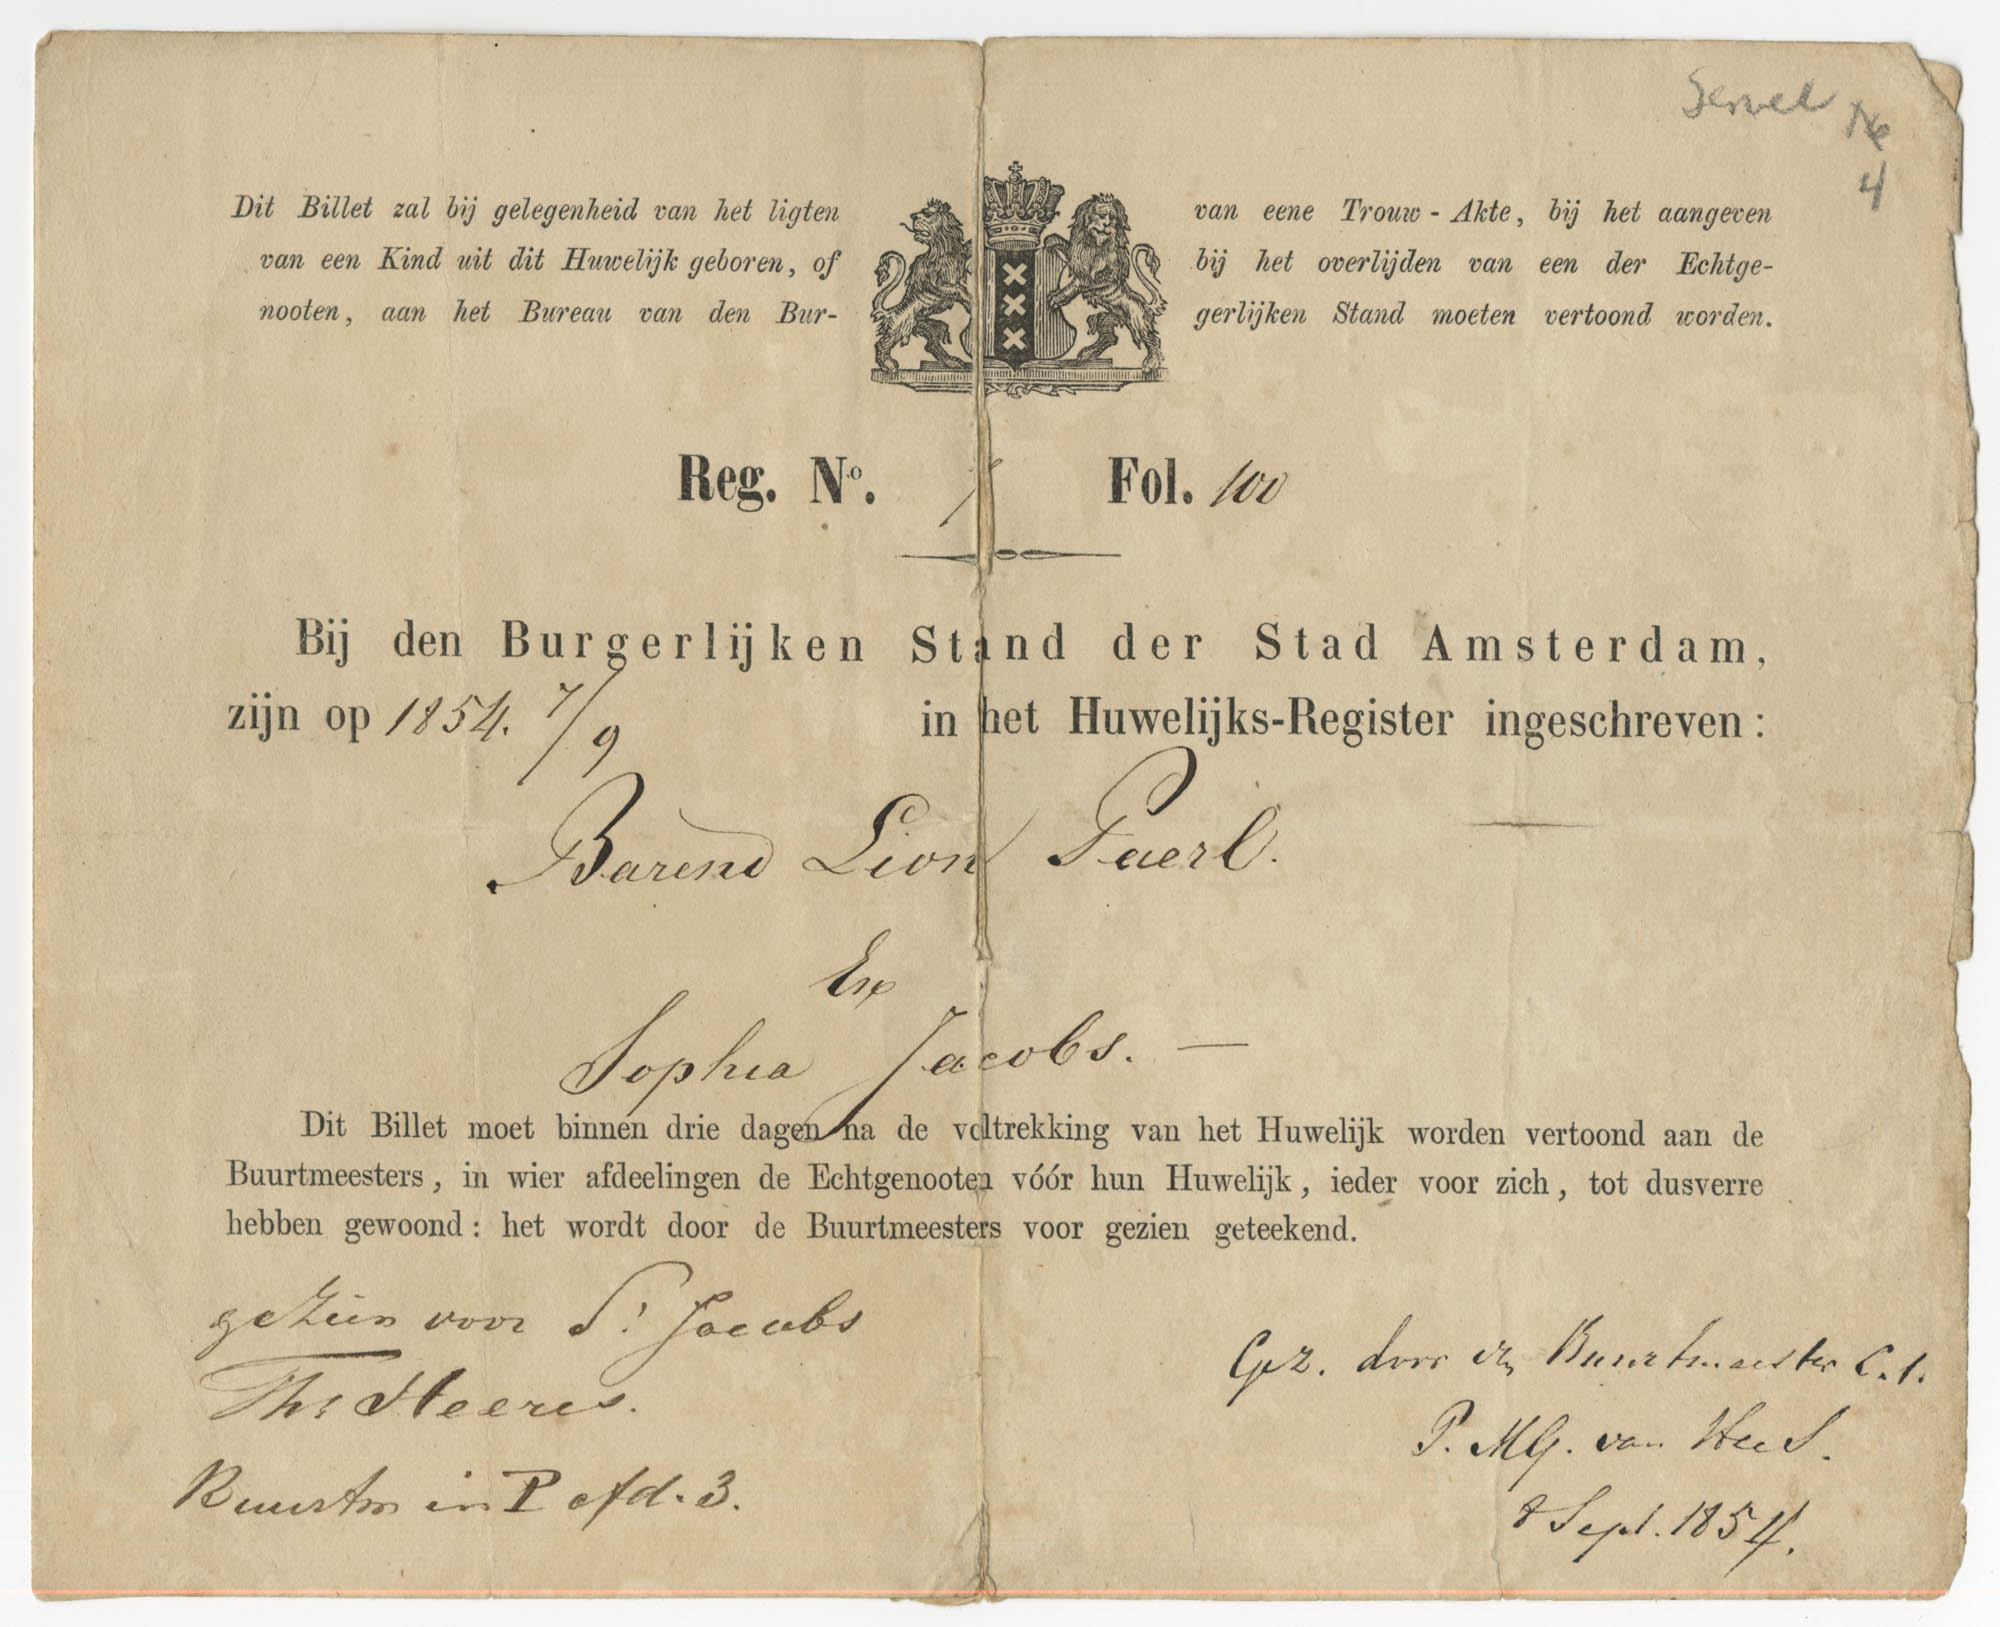 Barend Lion Paerl marriage certificate, 1854